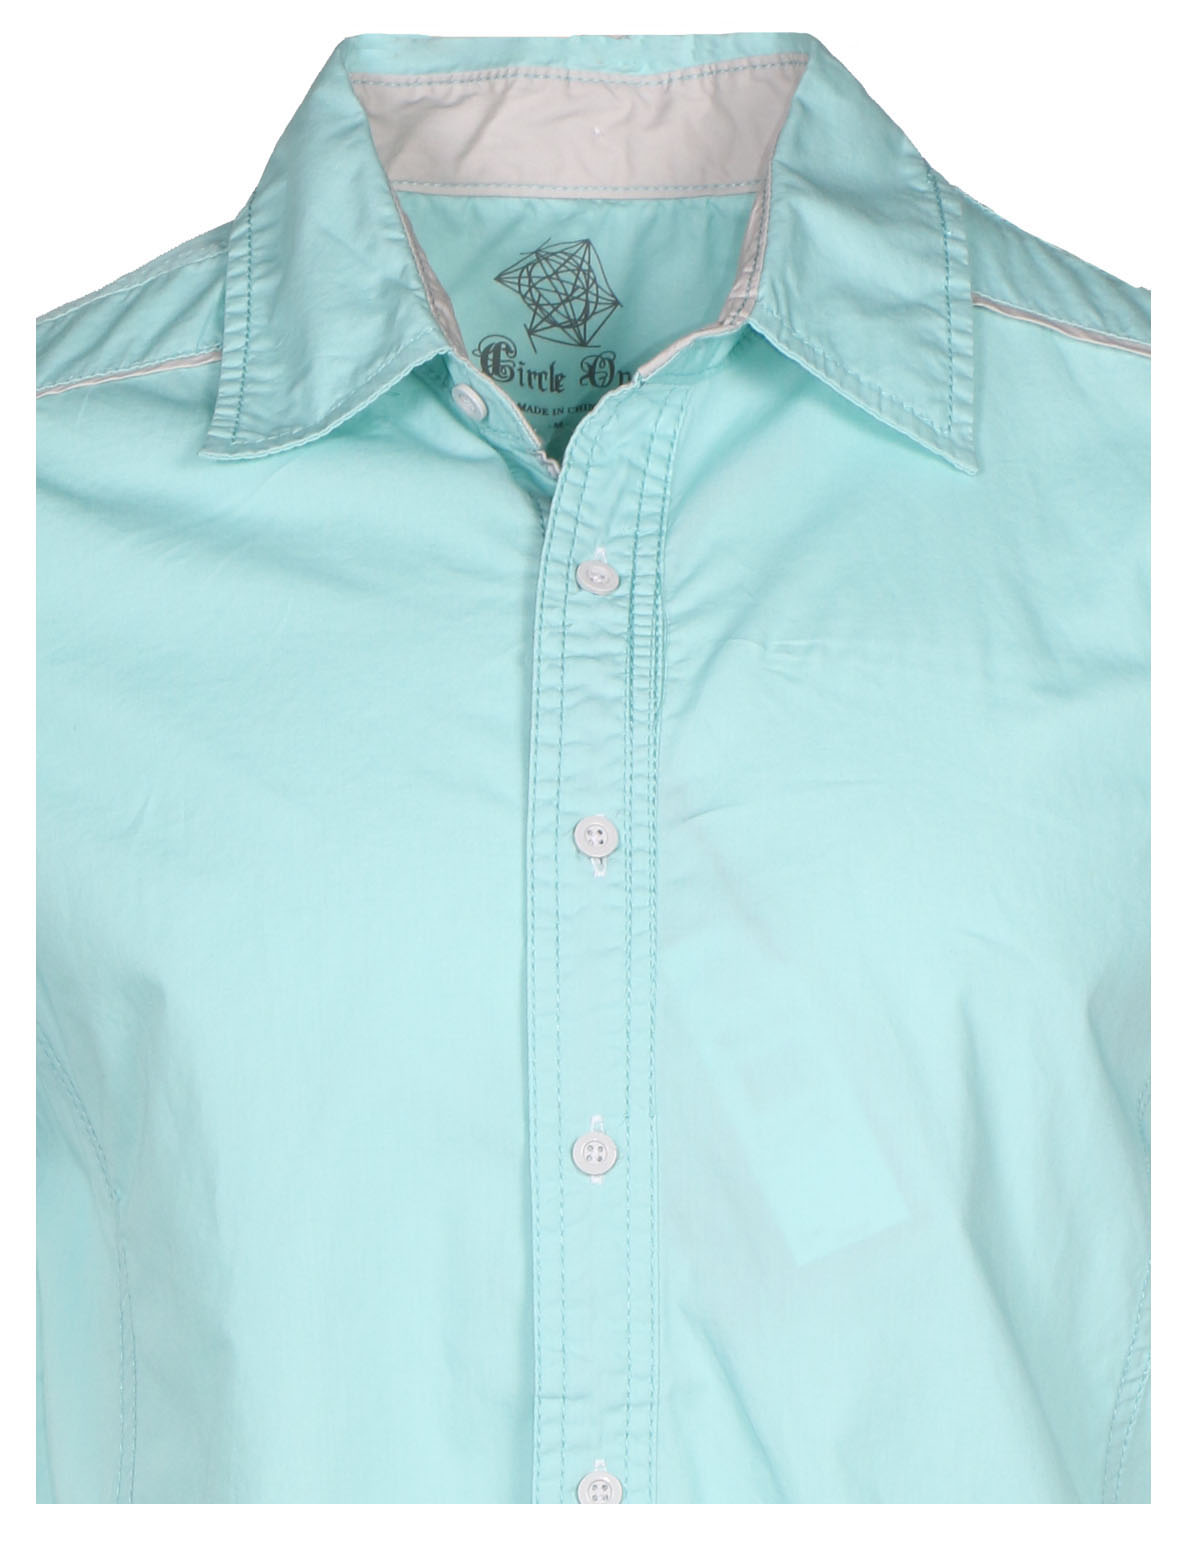 Circle one men 39 s short sleeve casual button down shirt for Polo shirts without buttons